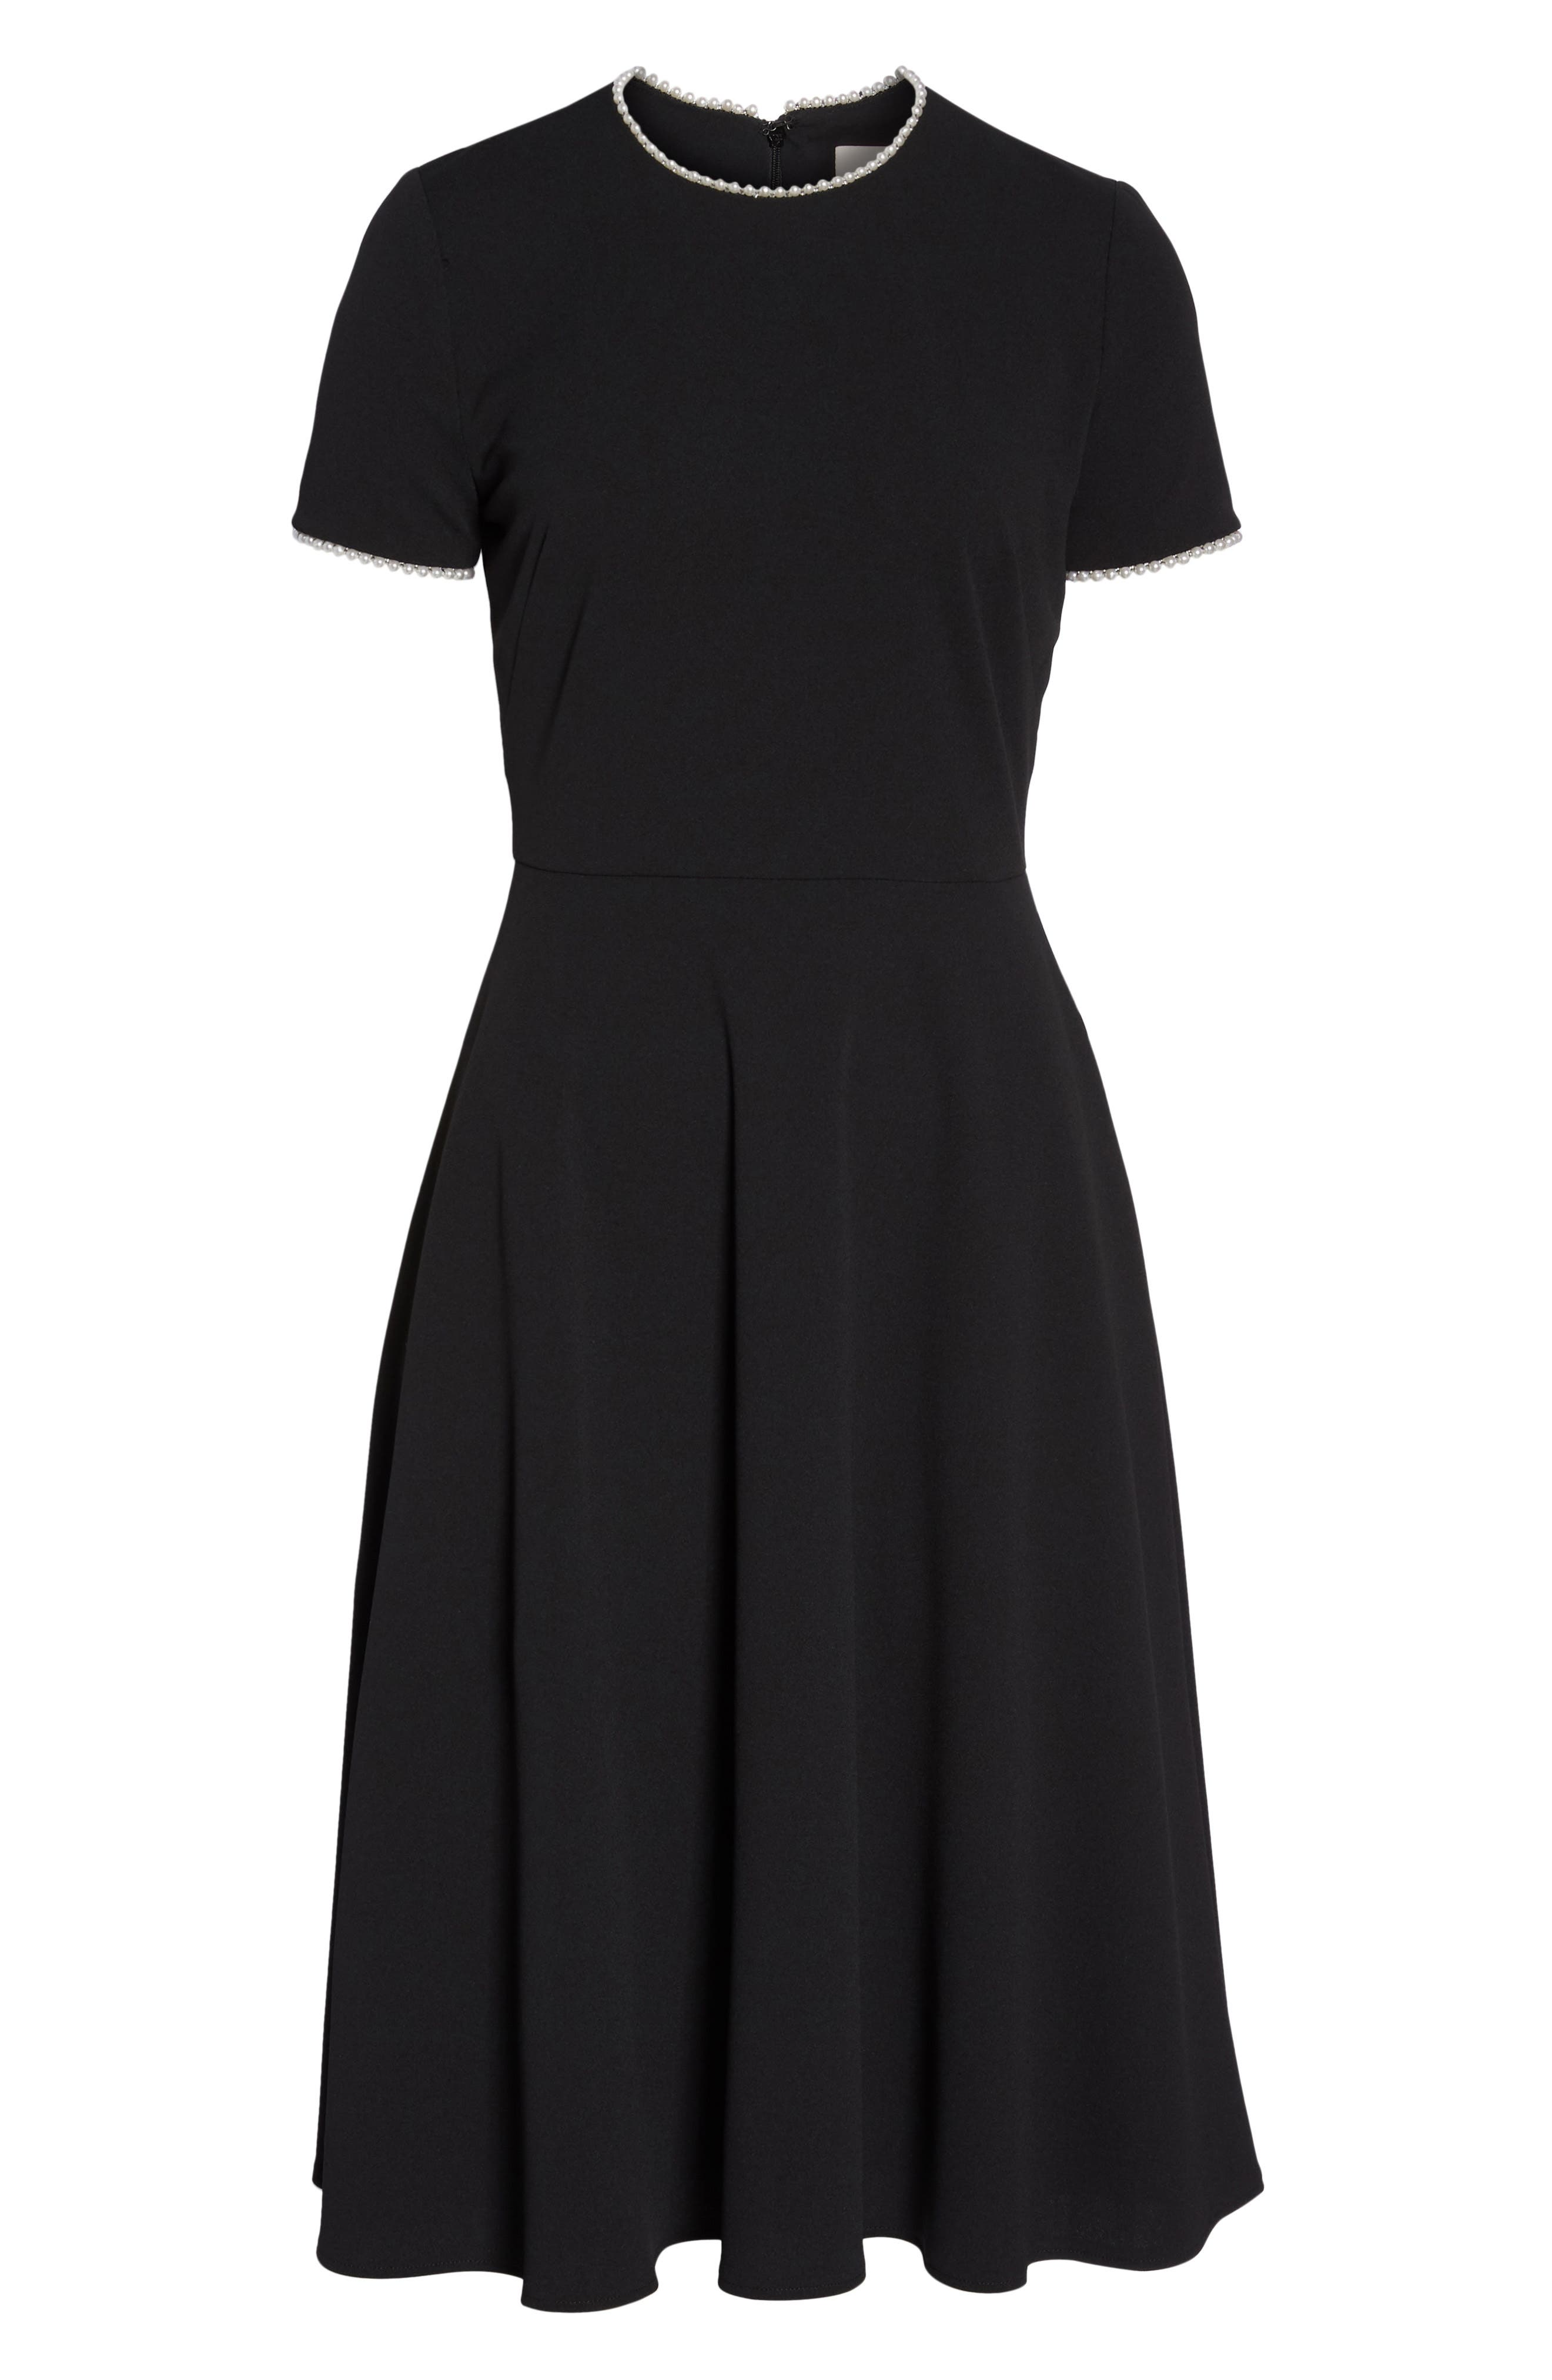 Victoria Pearly Trim Fit & Flare Dress,                             Alternate thumbnail 7, color,                             Black